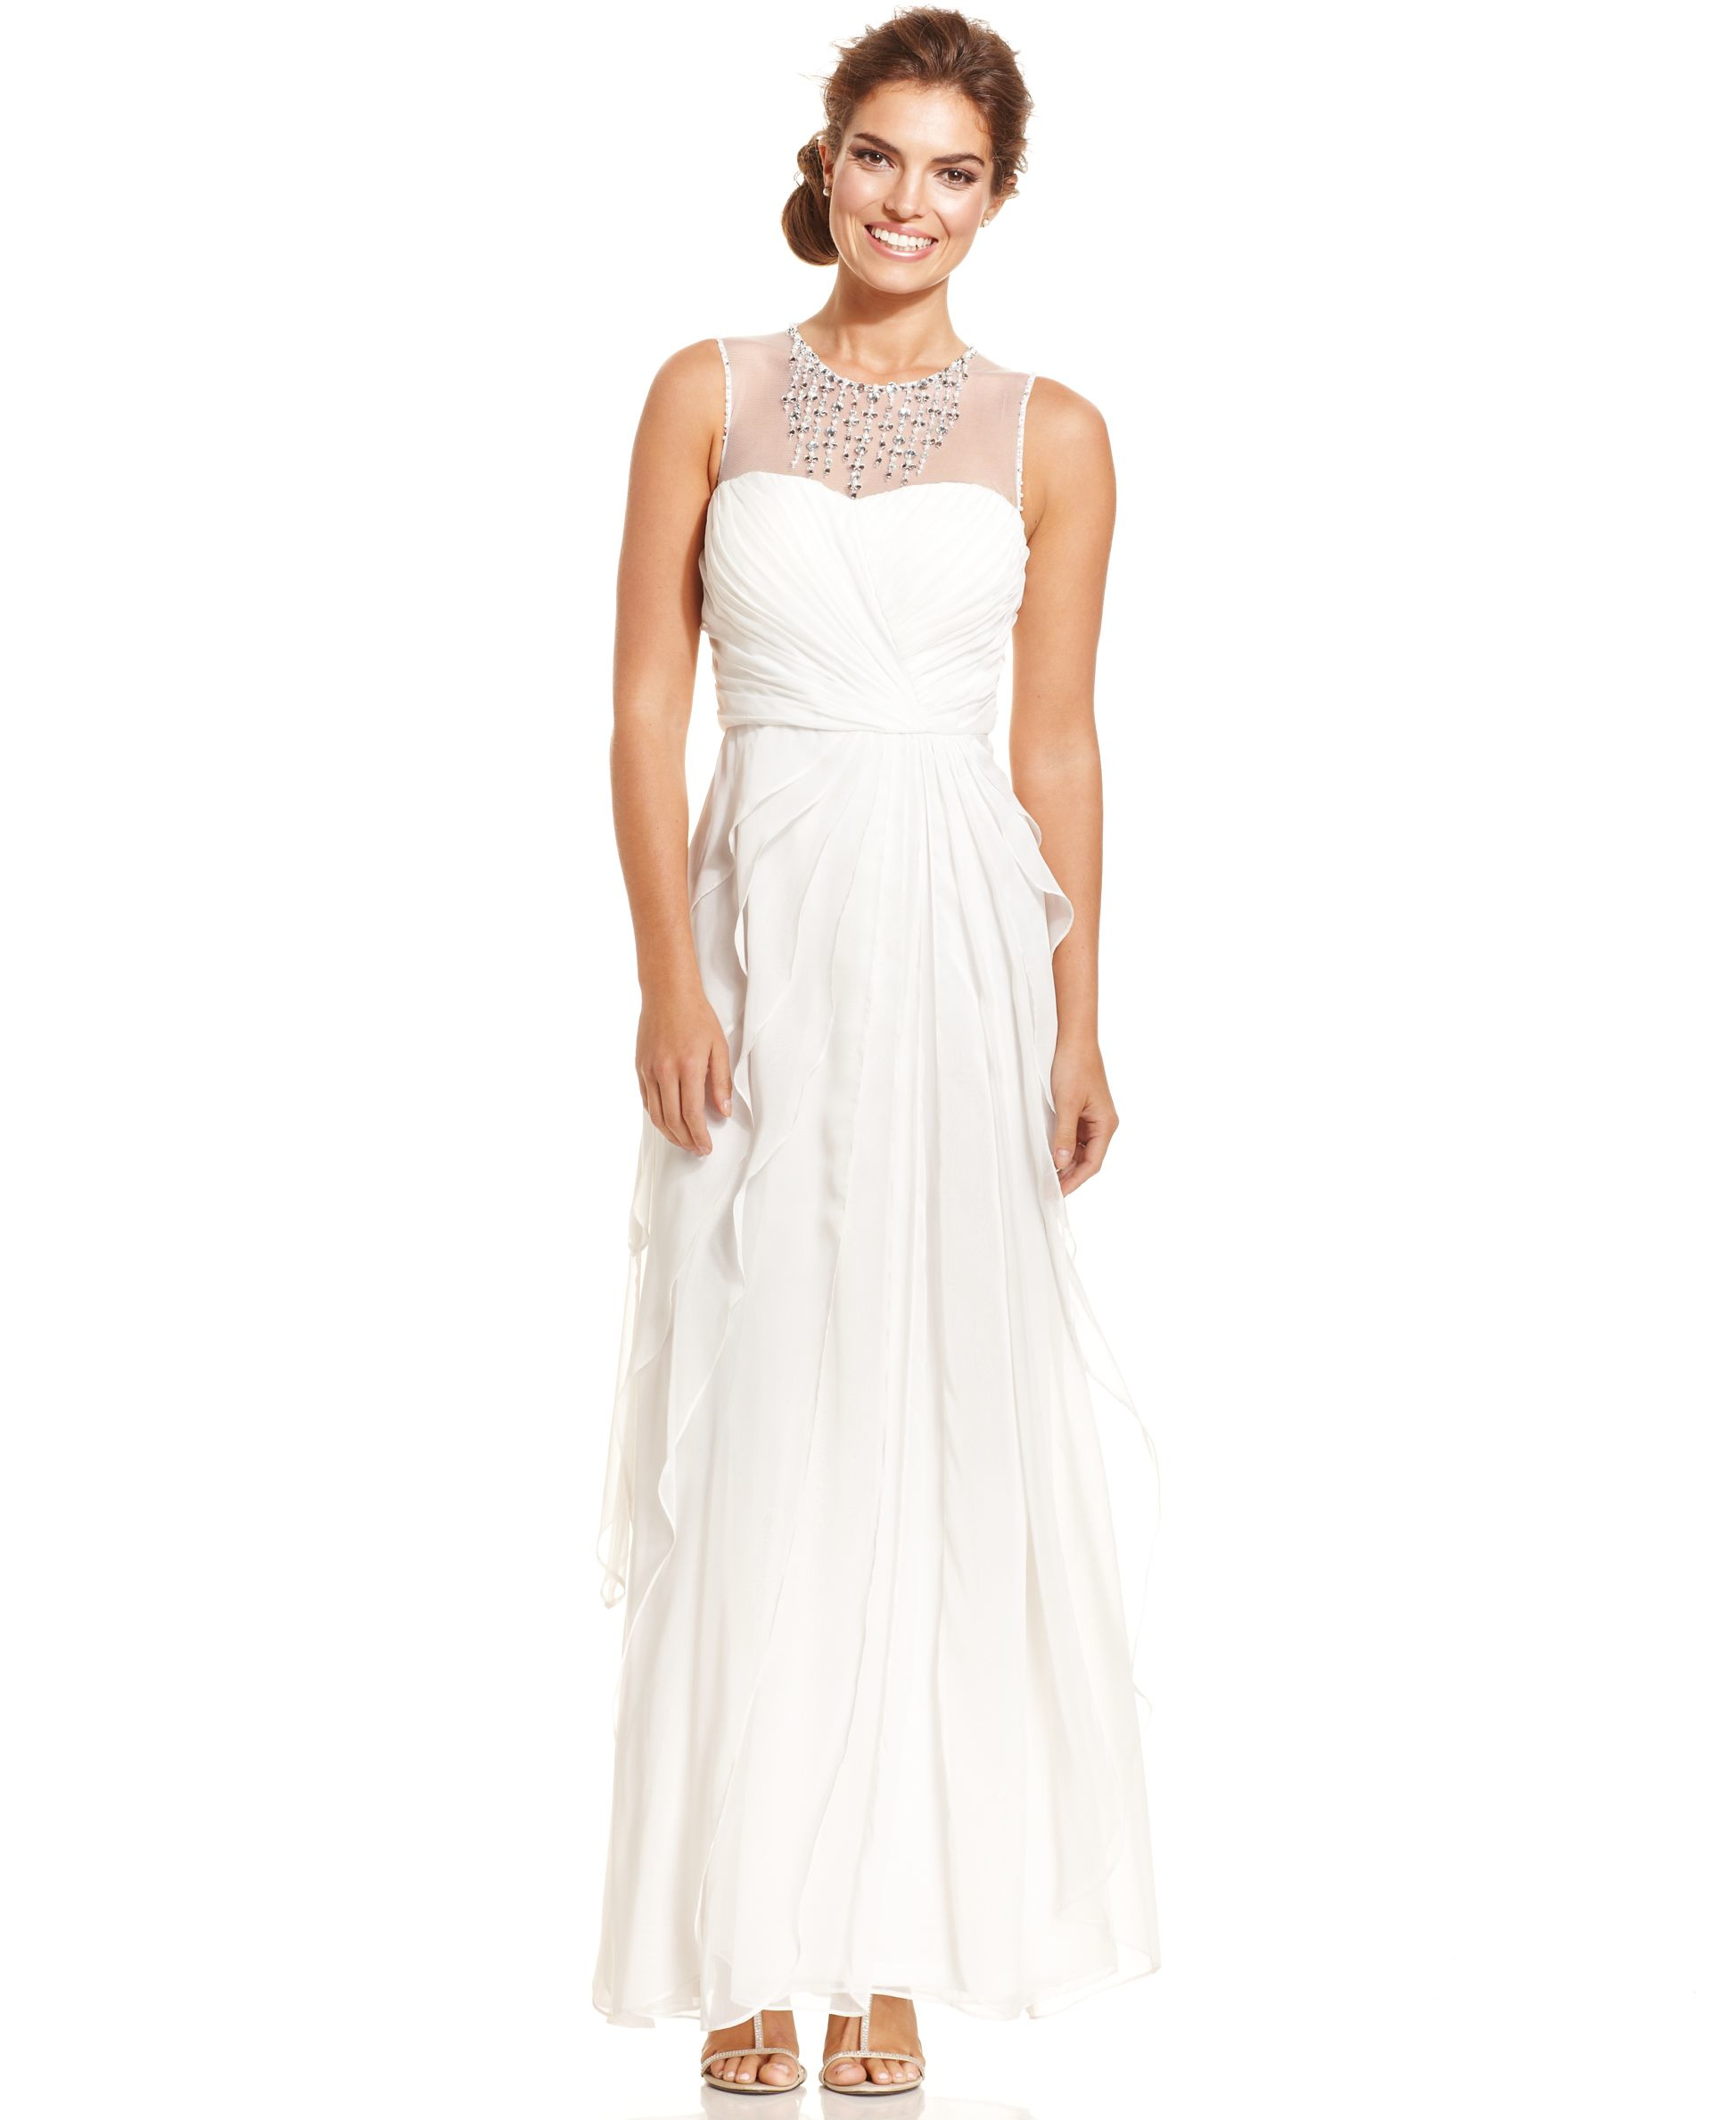 Lyst - Adrianna Papell Embellished Tiered Chiffon Gown in White